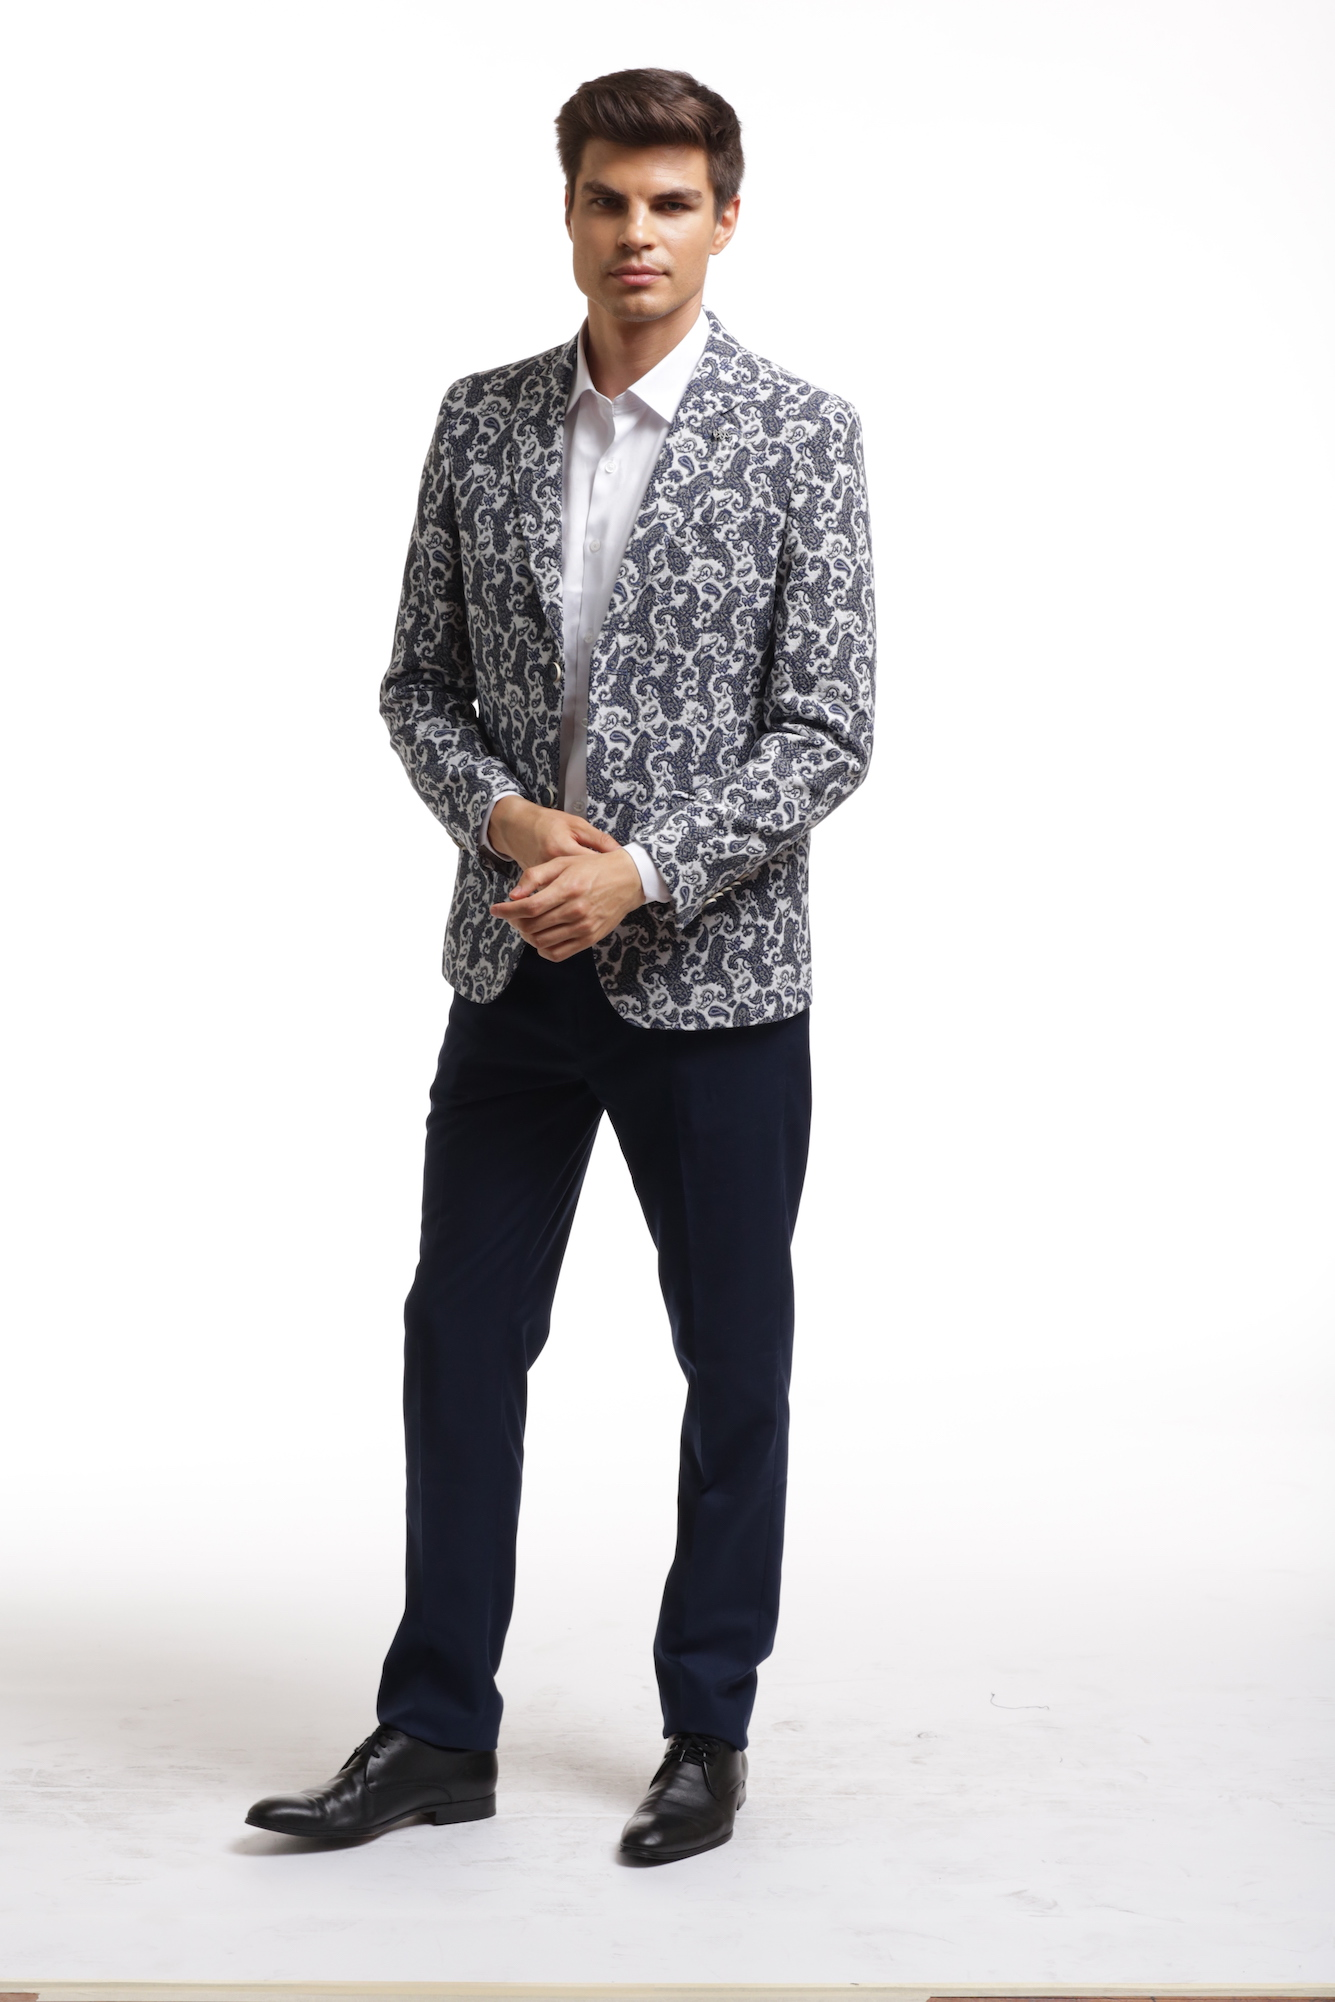 Elie Balleh Brocade Paisley Men's Blazers - Sports Coat Jacket